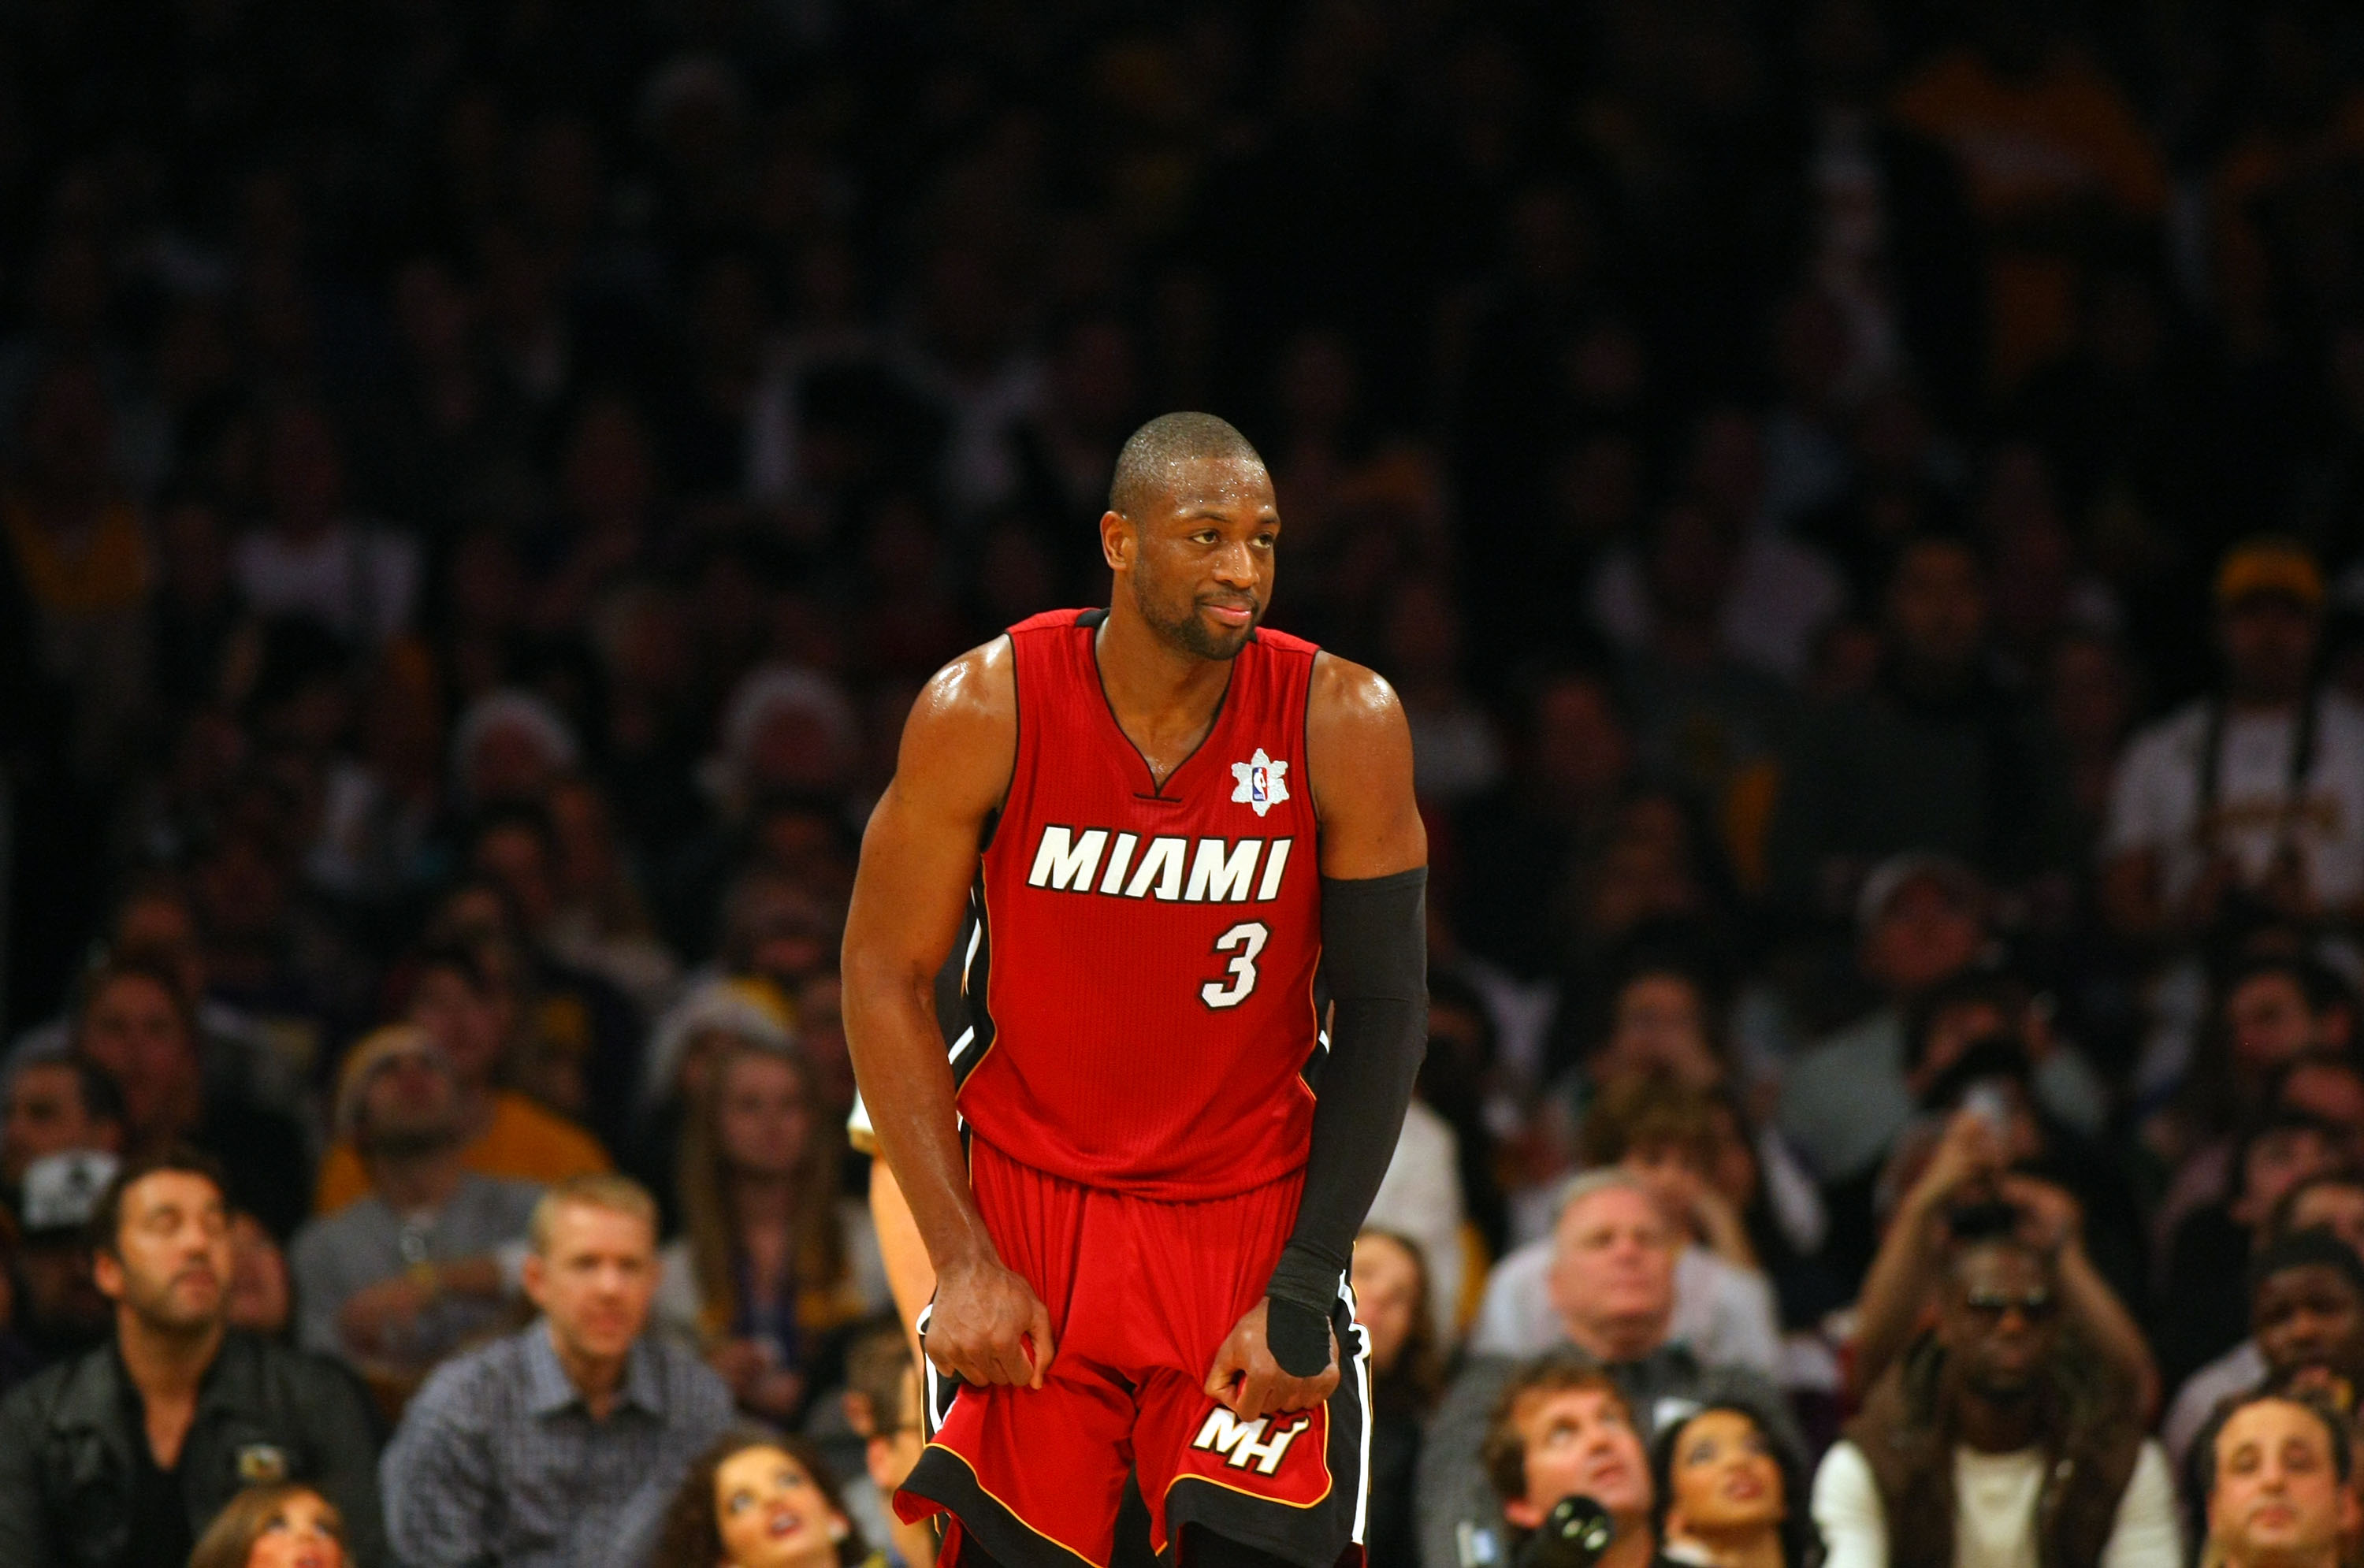 LOS ANGELES, CA - DECEMBER 25:  Dwyane Wade #3 of the Miami Heat reacts after being called for a foul during the NBA game against the Los Angeles Lakers at Staples Center on December 25, 2010 in Los Angeles, California. The Heat defeated the Lakers 96-80.